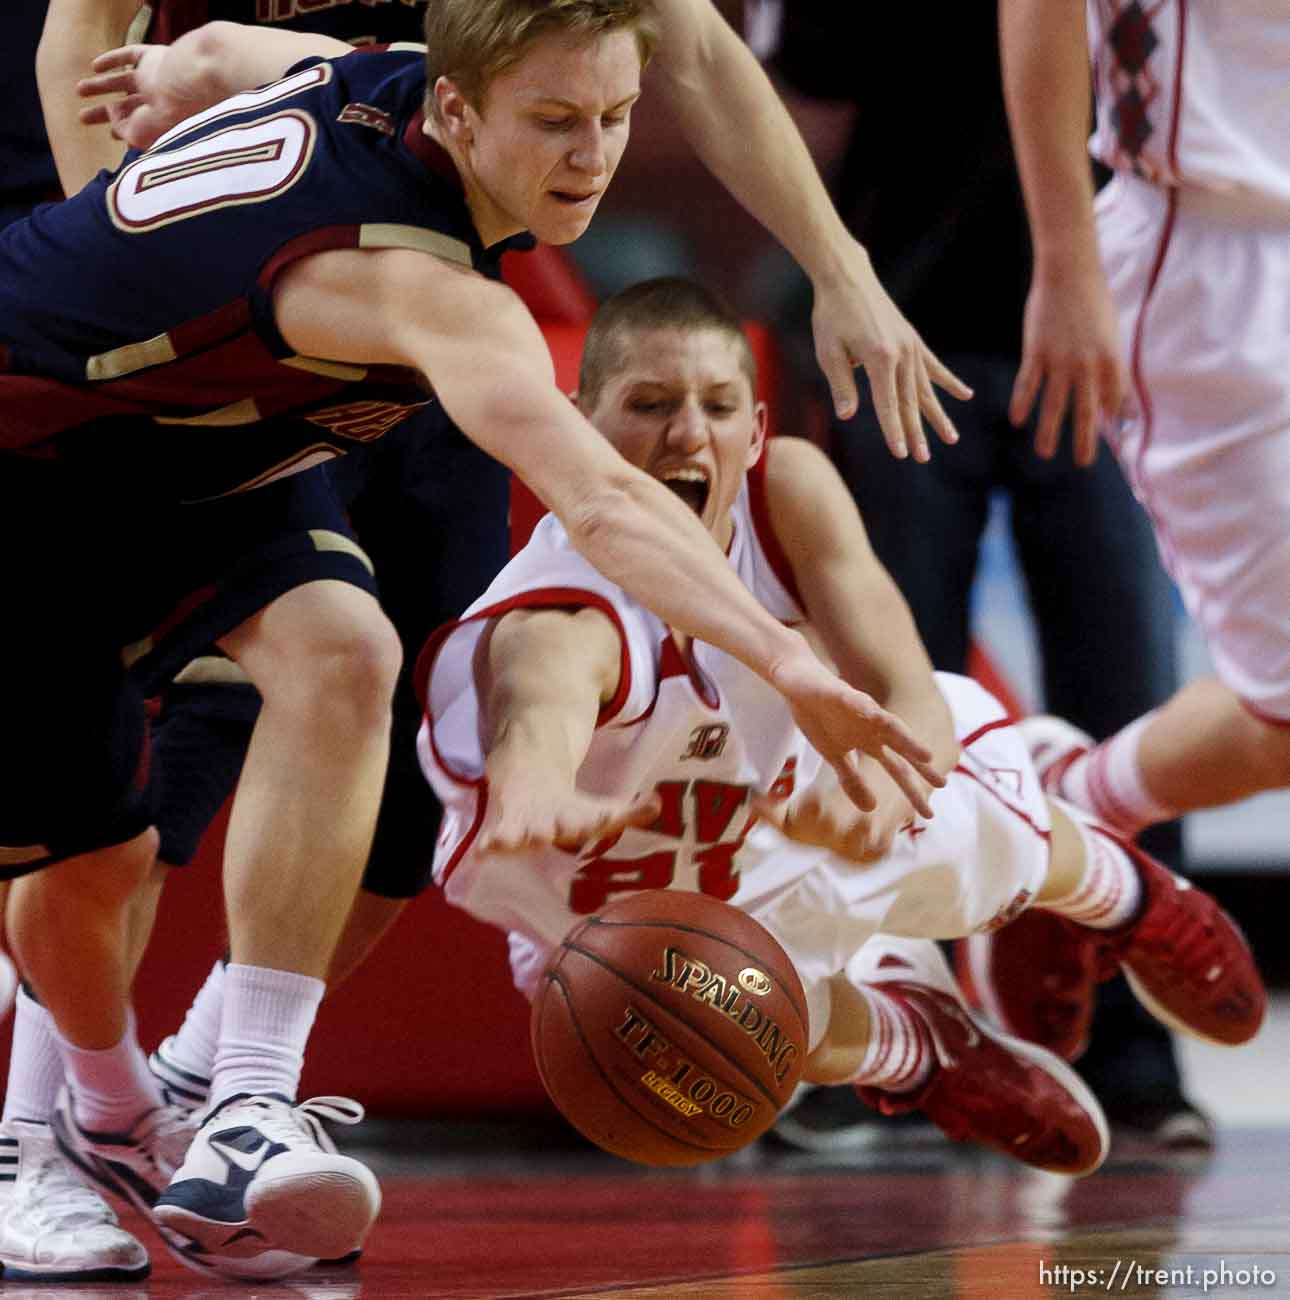 Trent Nelson | The Salt Lake Tribune Bountiful's Dain Murdock dives for the ball, as Herriman's Tanner McKissick also reaches. Bountiful vs. Herriman, 4A High School Basketball Championships Wednesday, February 29, 2012 at the Maverik Center in West Valley City, Utah.